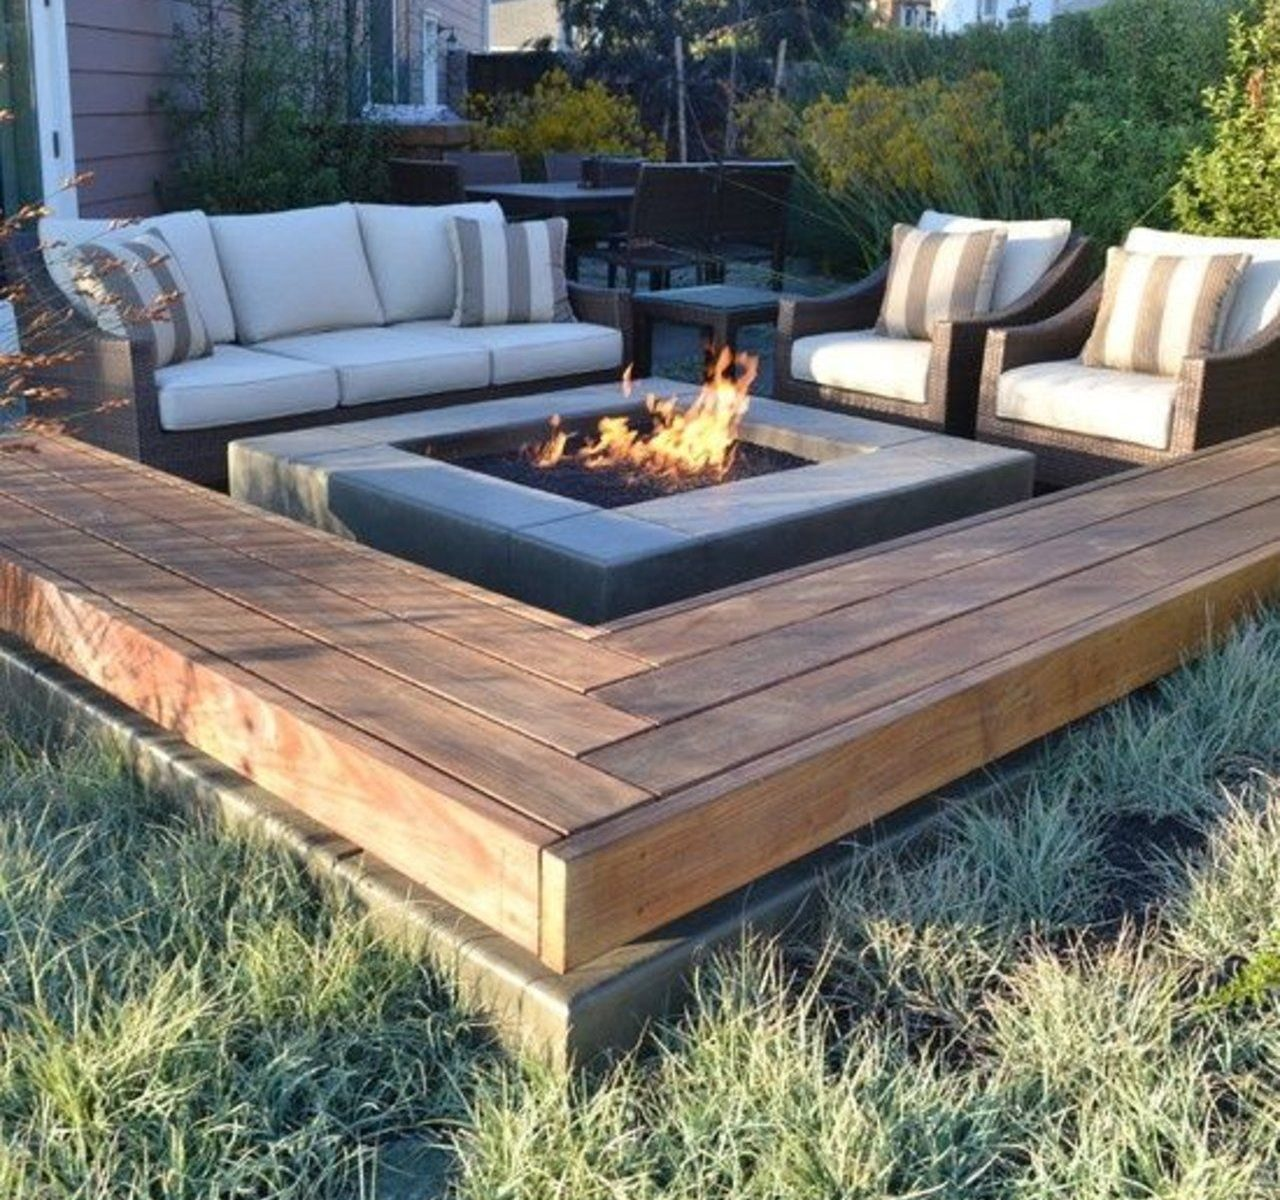 The Secrets To The Best Backyards On Pinterest Pinterest Outdoor with The Most Incredible  outdoor seating for Warm